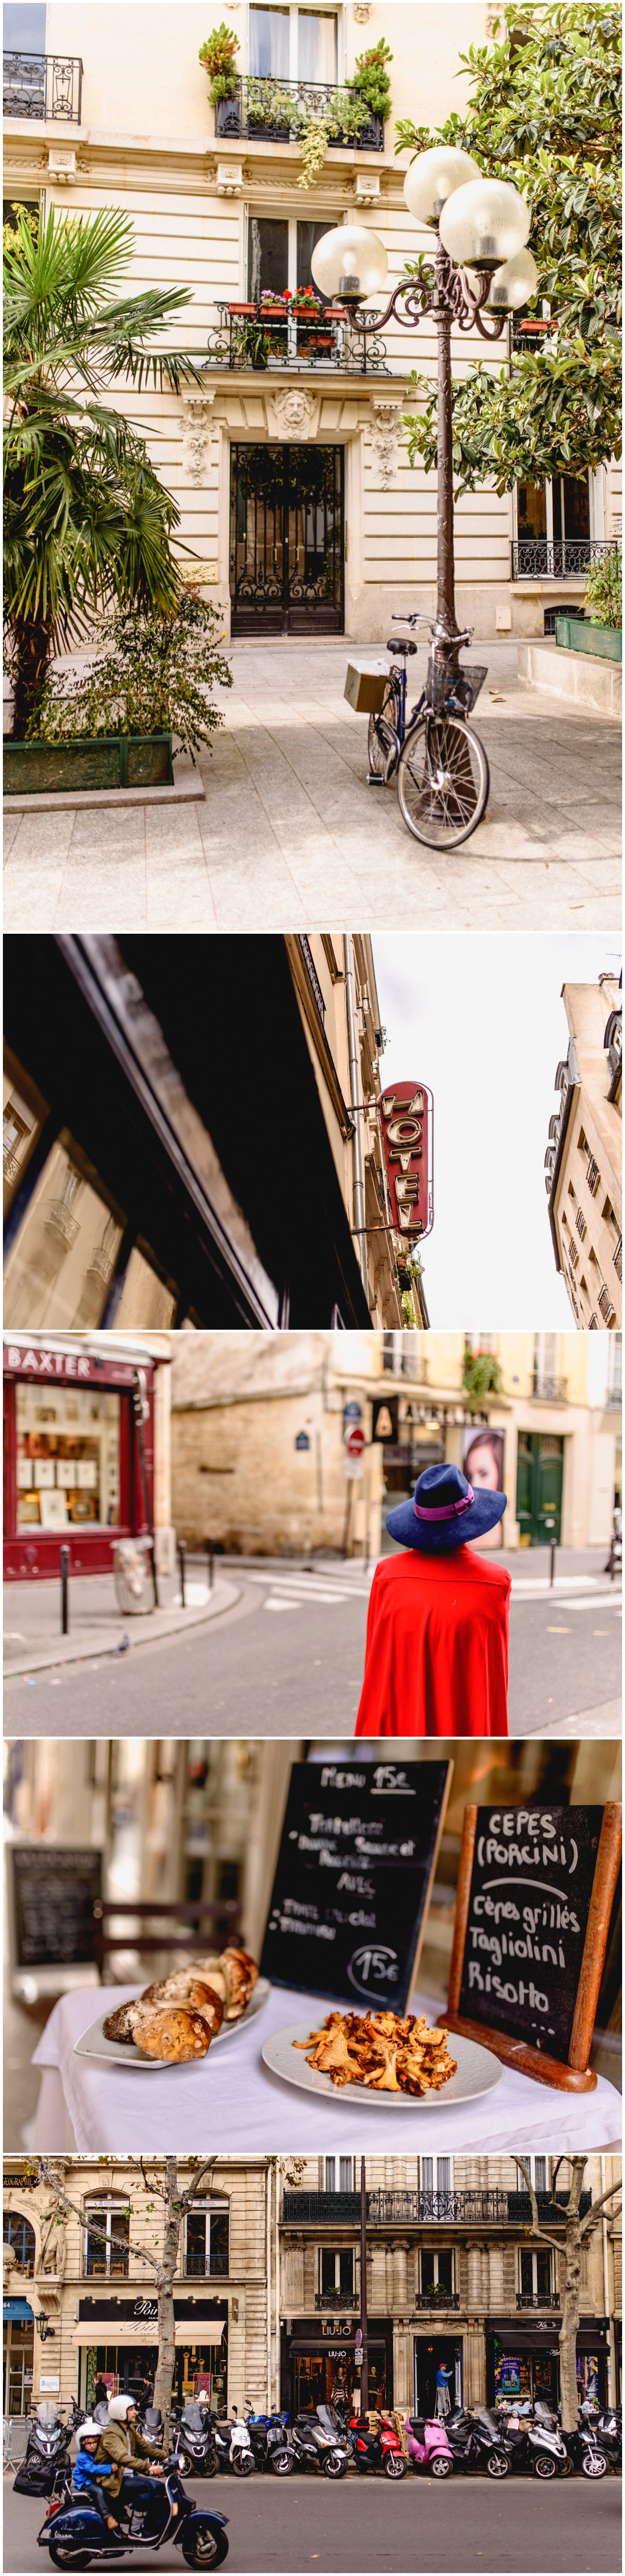 Paris street photography and travel photography by Lisa Carpenter Photography, West Midlands Wedding photographer, personal photo journal for ten year wedding anniversary celebrations